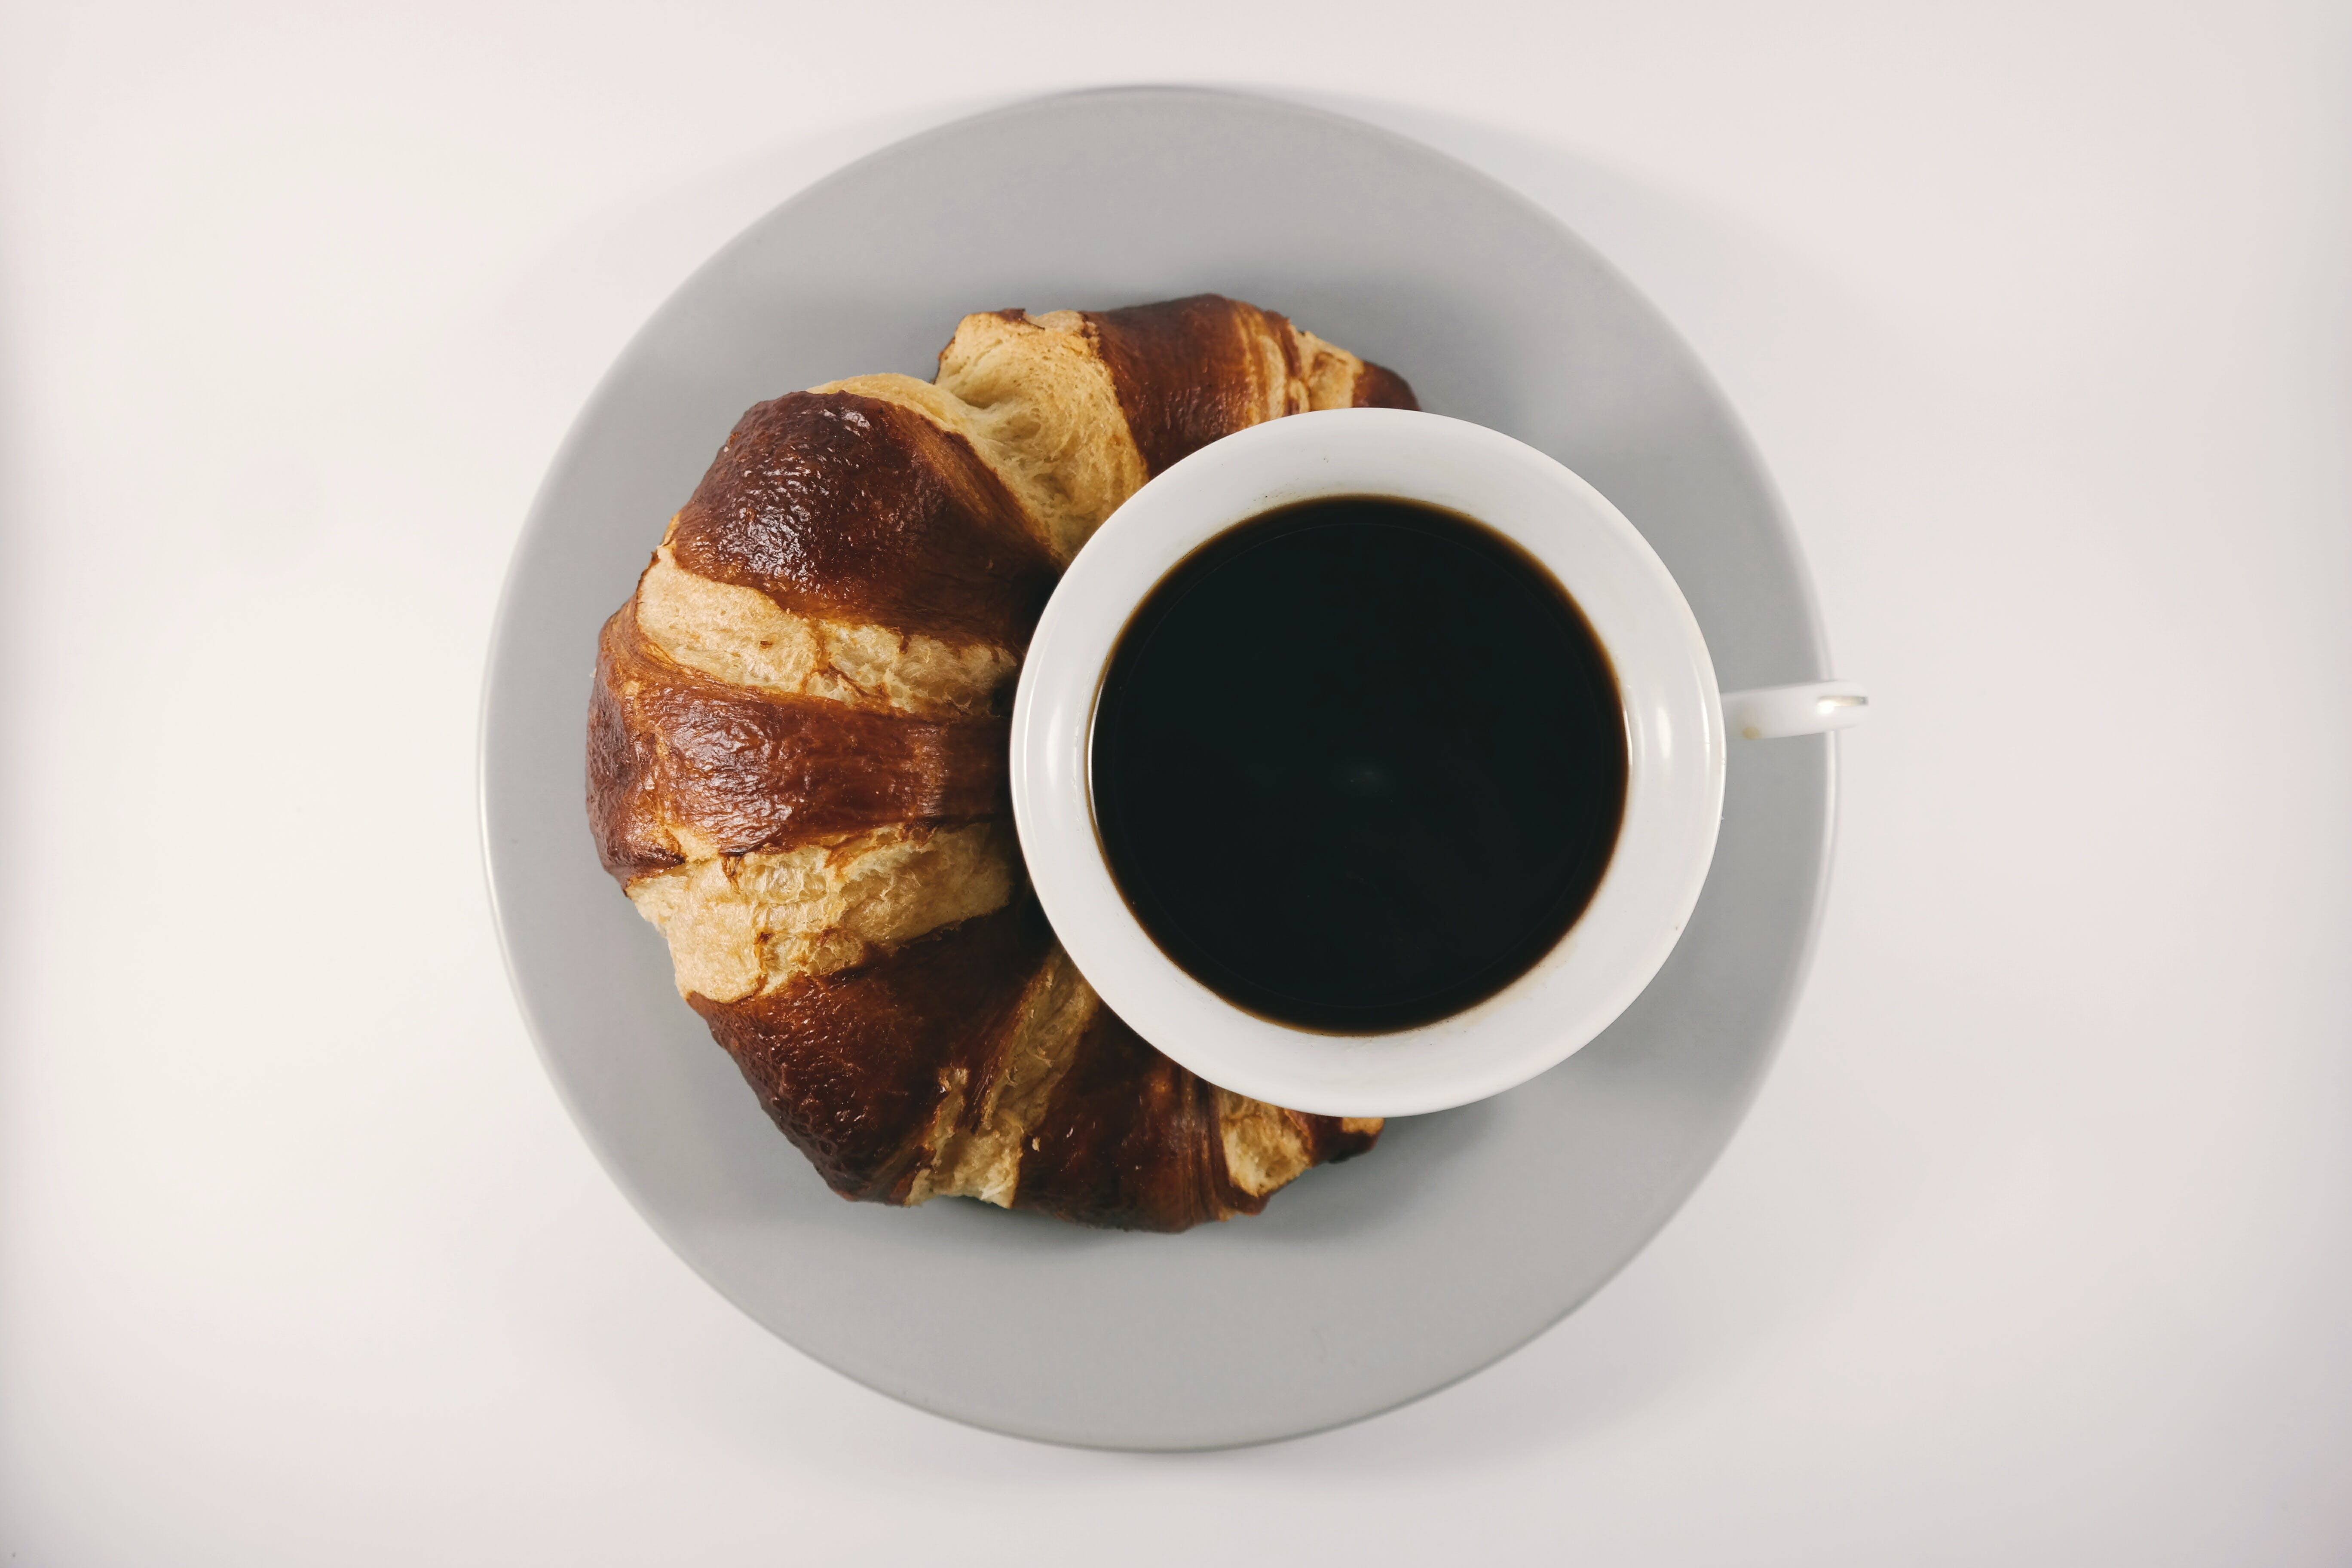 Croissant on Ceramic Plate Beside Cup With Coffee